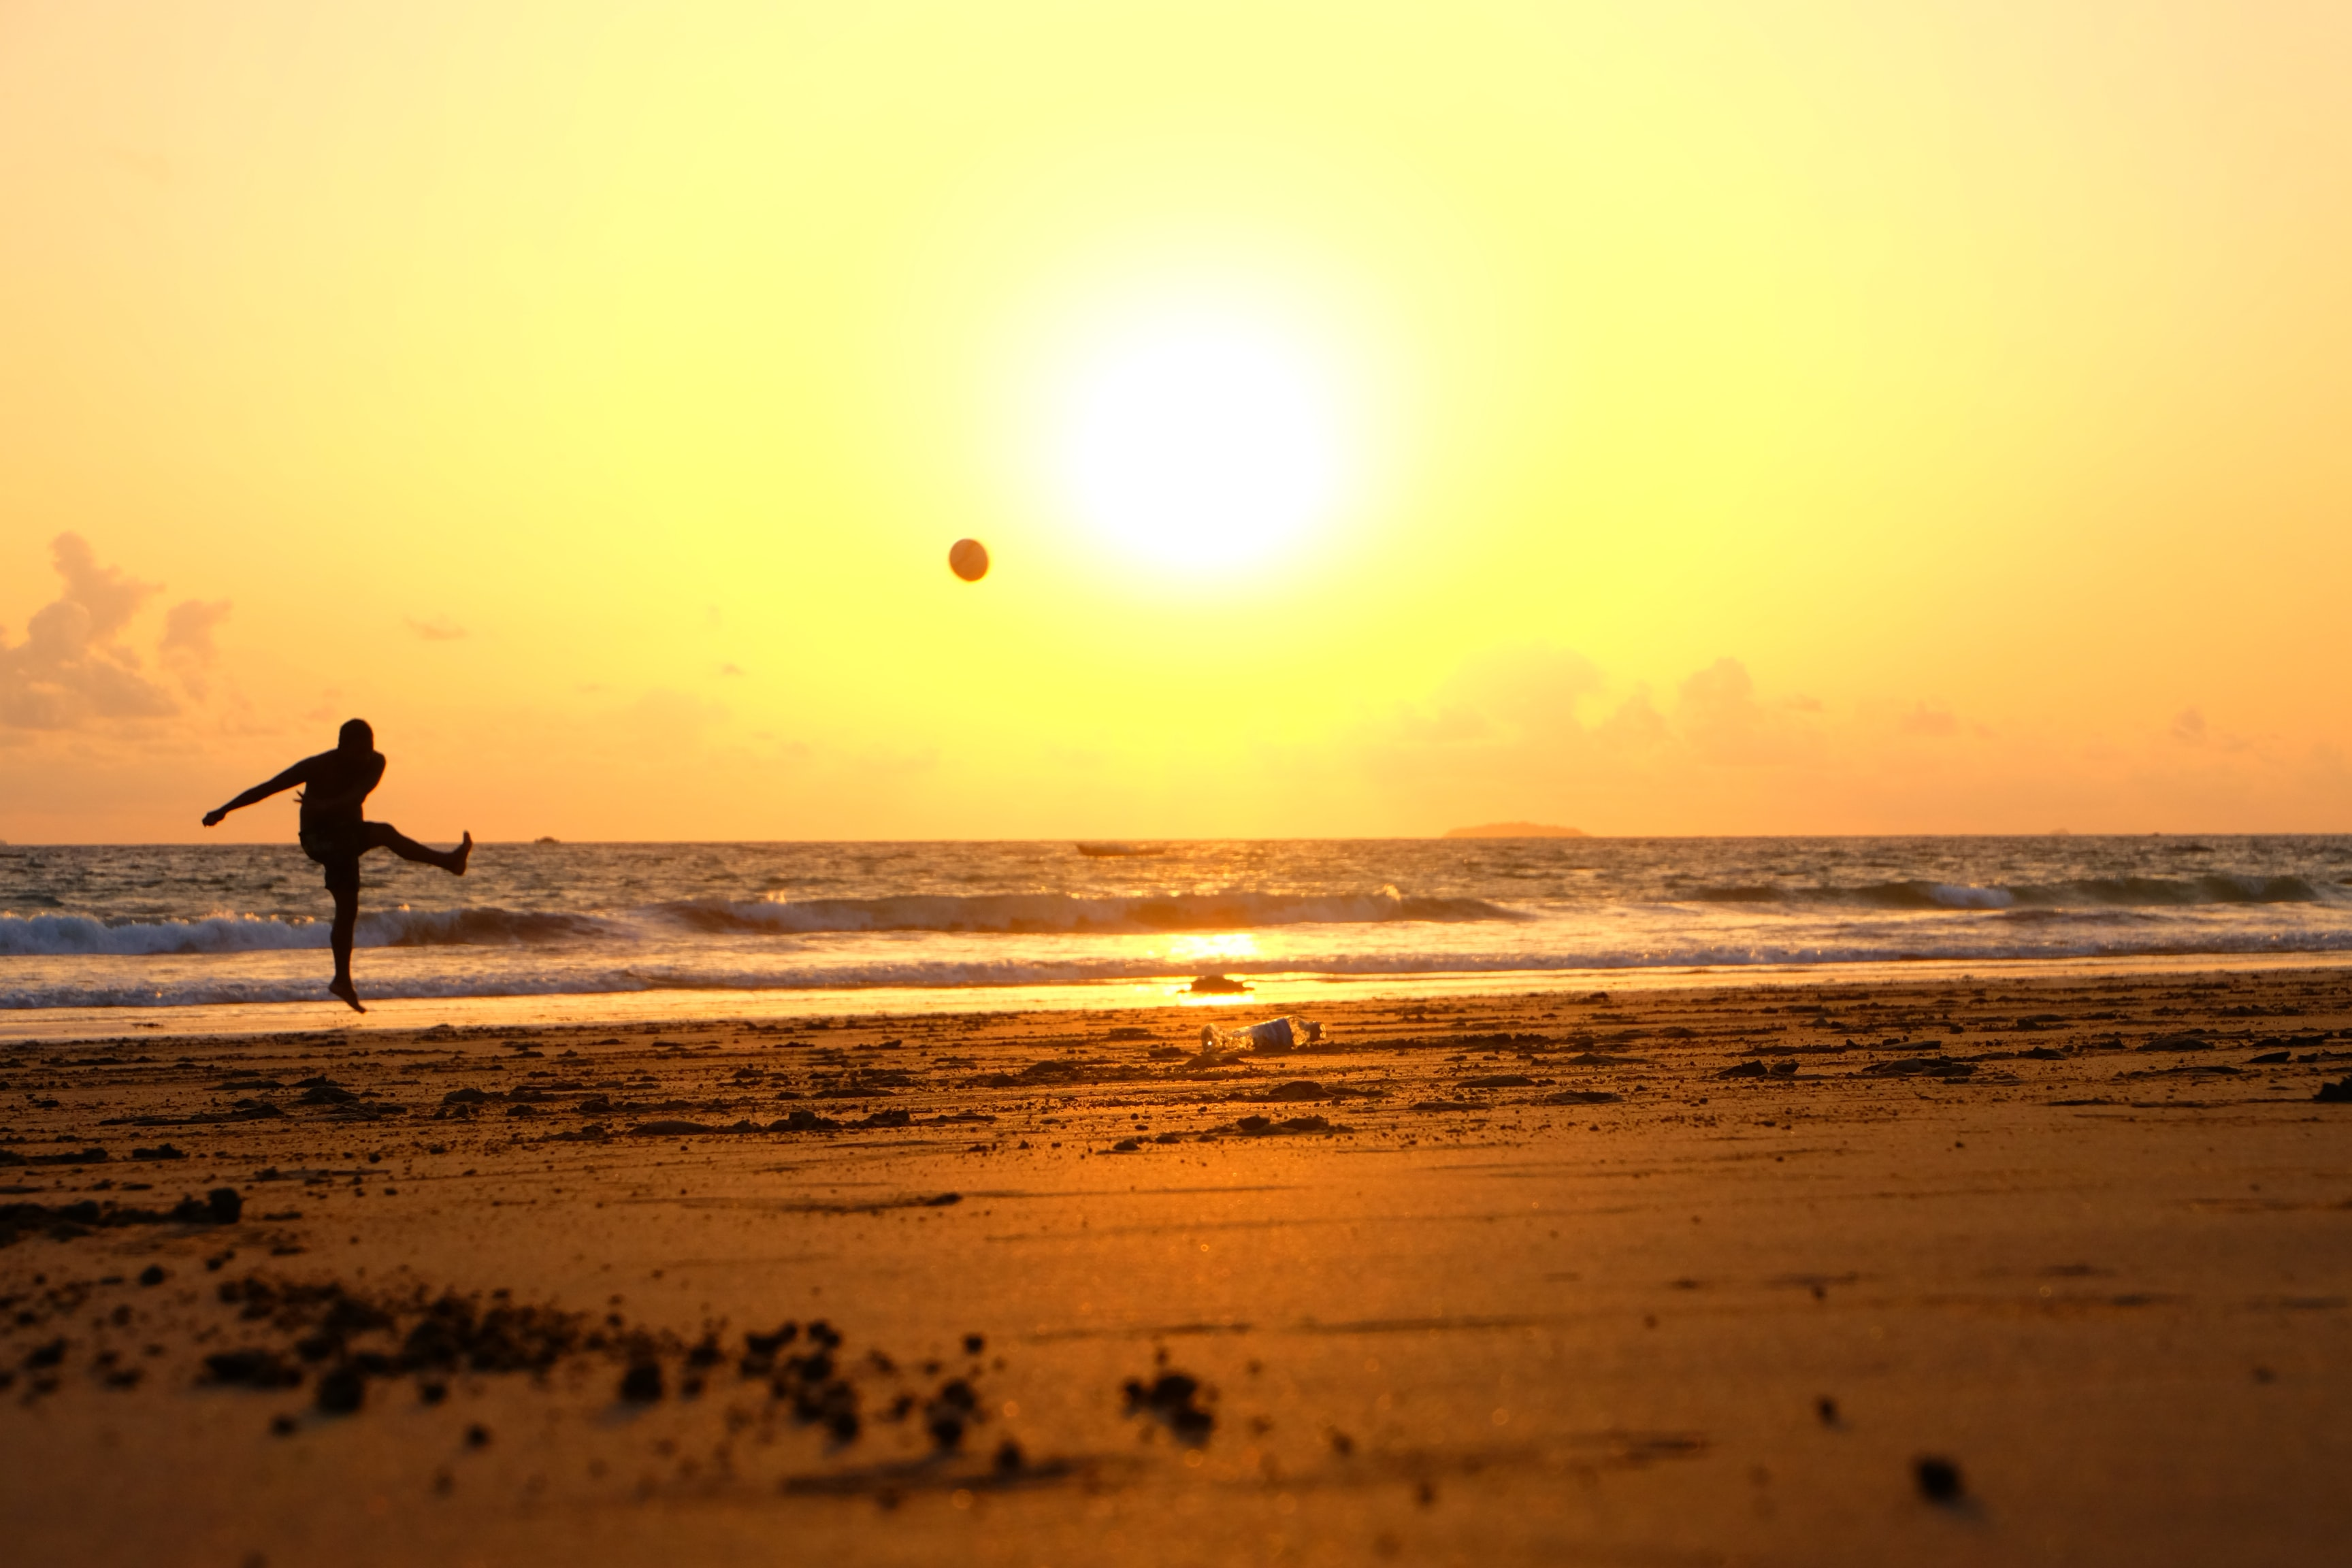 Silhouette kicking the ball in mid air before sunset at the beach in Ngwesaung